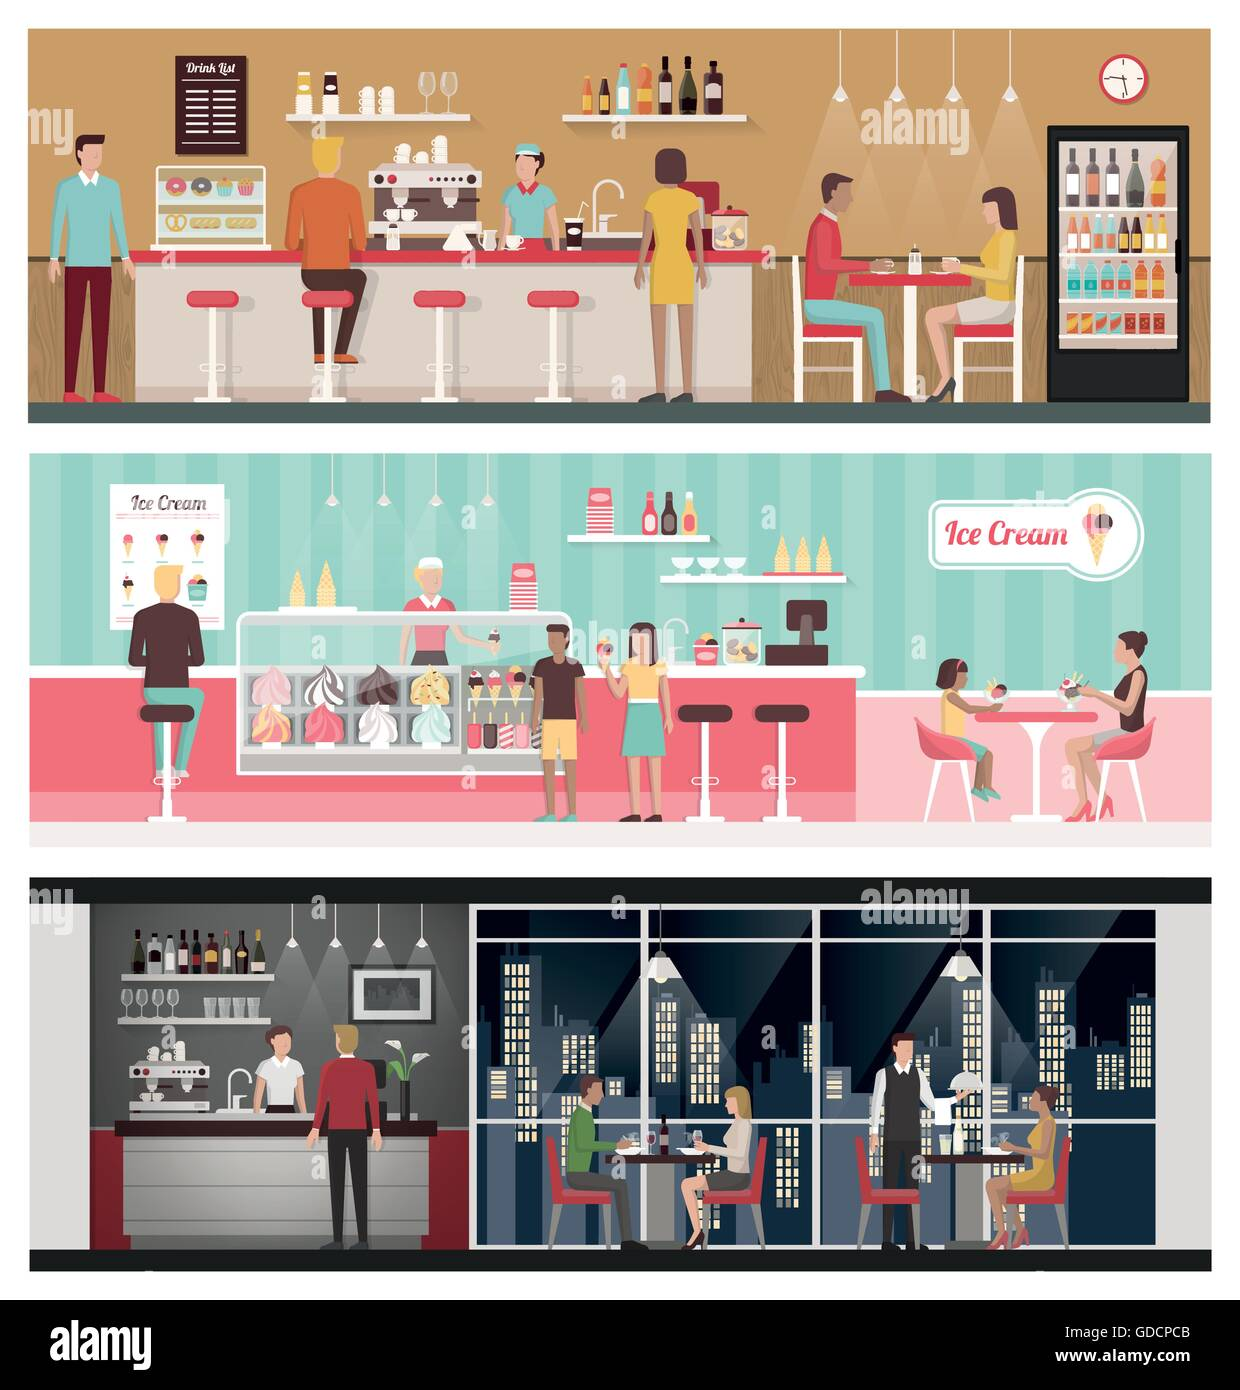 People eating and drinking in a bar, in an ice-cream shop and in a luxury restaurant, healthy eating and lifestyle Stock Vector